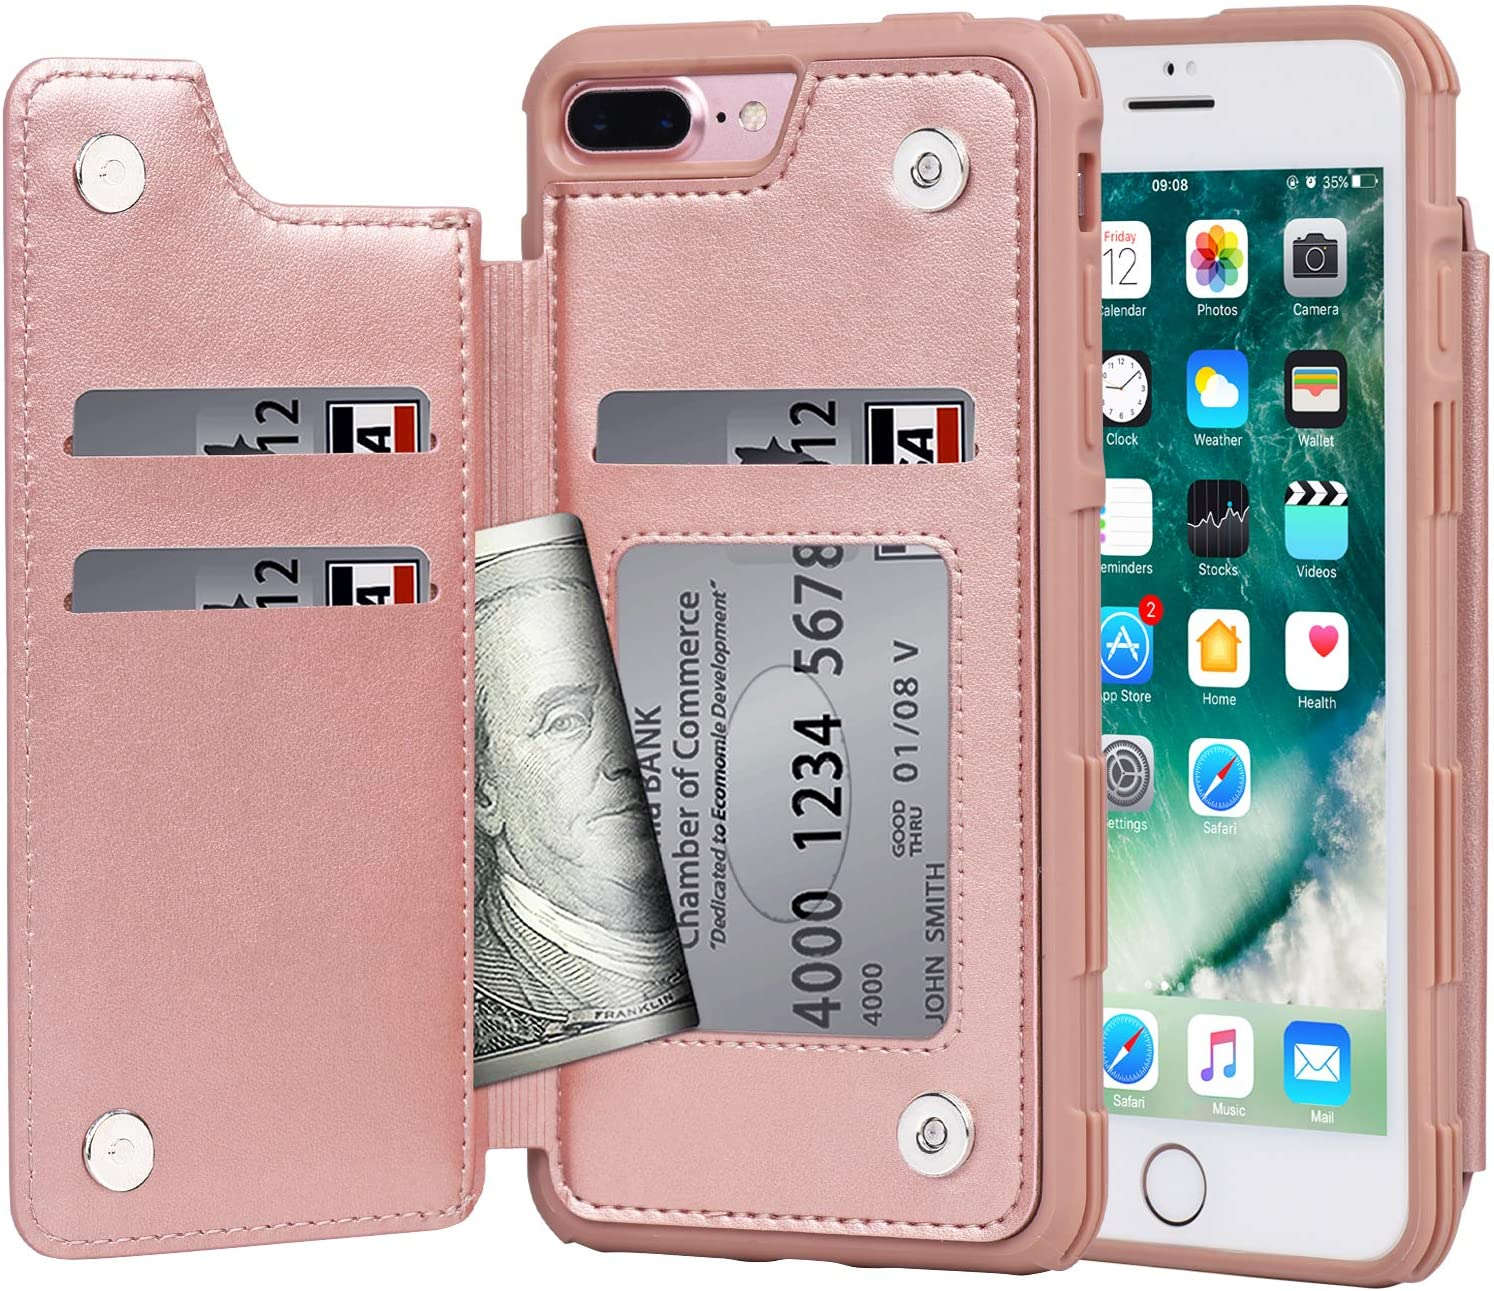 Arae Case for iPhone 7 Plus/iPhone 8 Plus - Wallet Case with PU Leather Card Pockets [Shockproof] Back Flip Cover for iPhone 7 Plus / 8 Plus 5.5 inch (Rosegold)